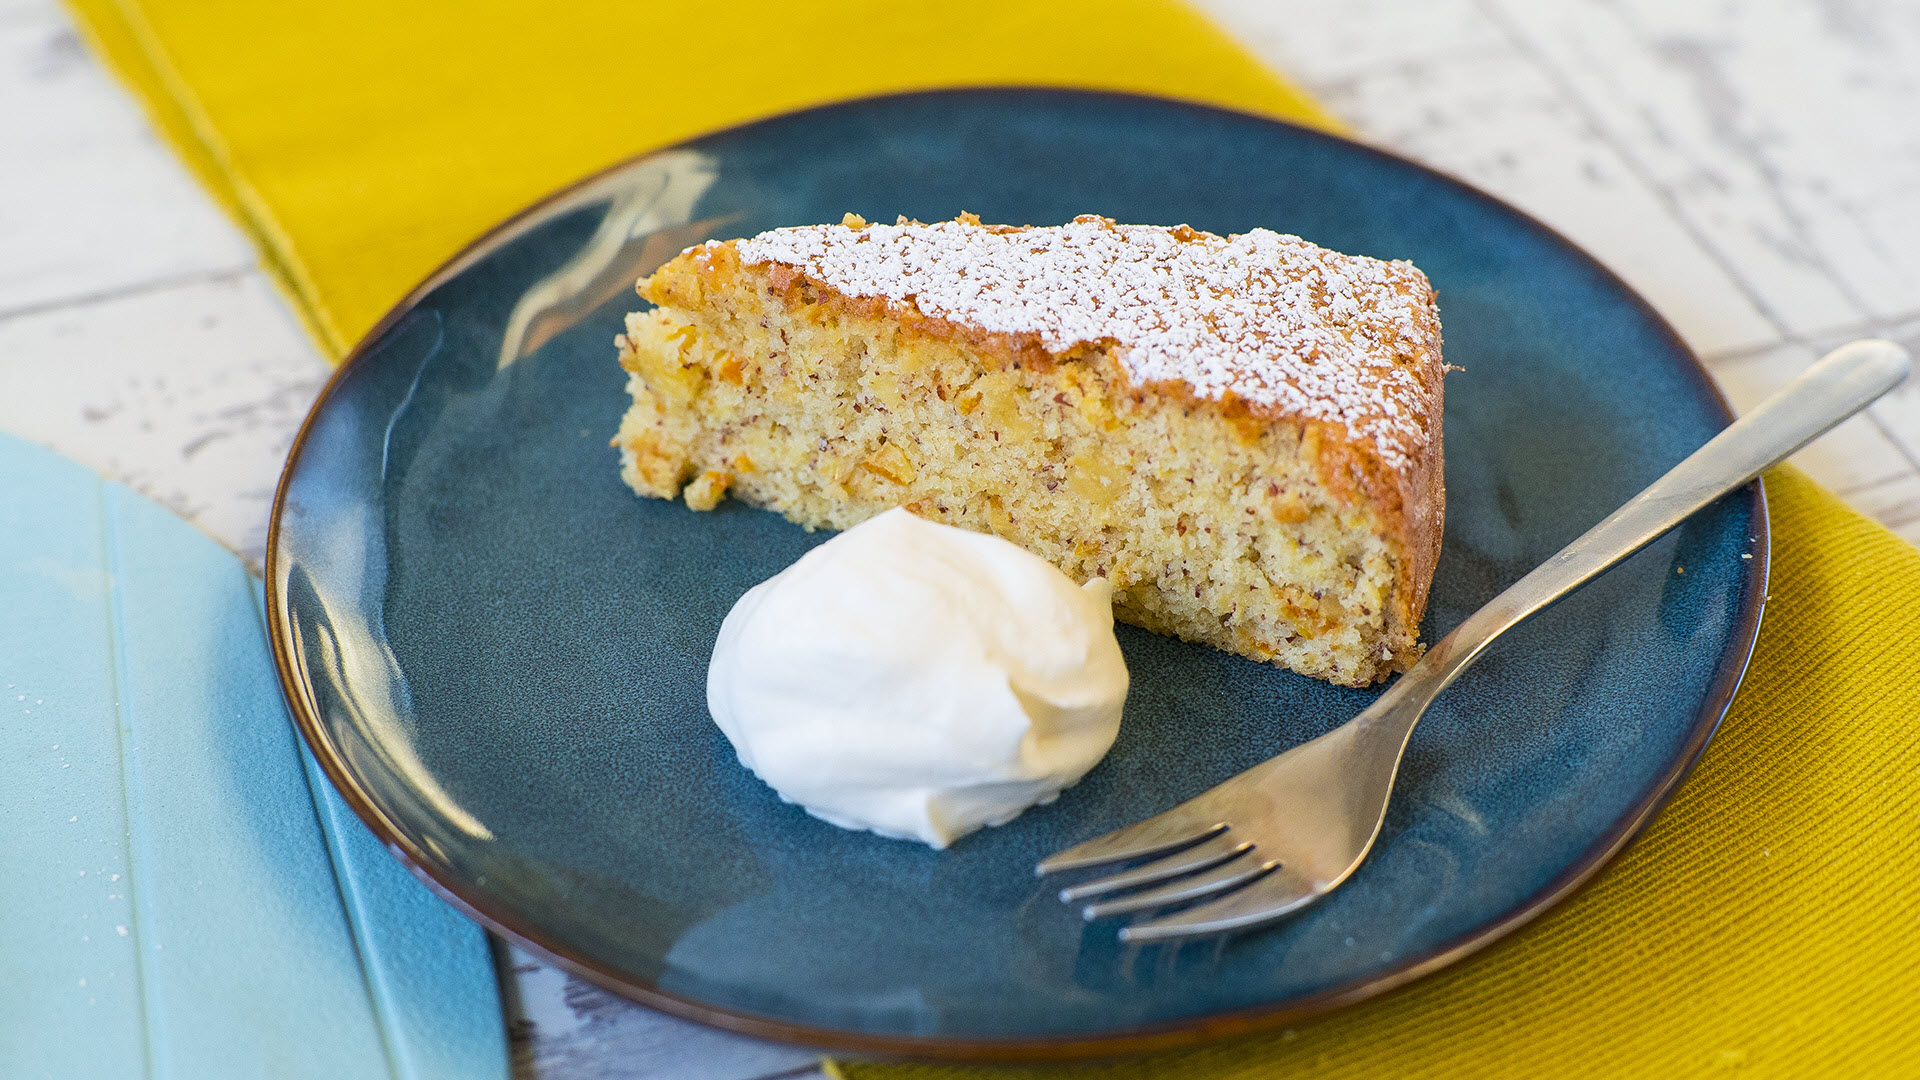 Orange Cake with Semolina and Almonds foodfanatic